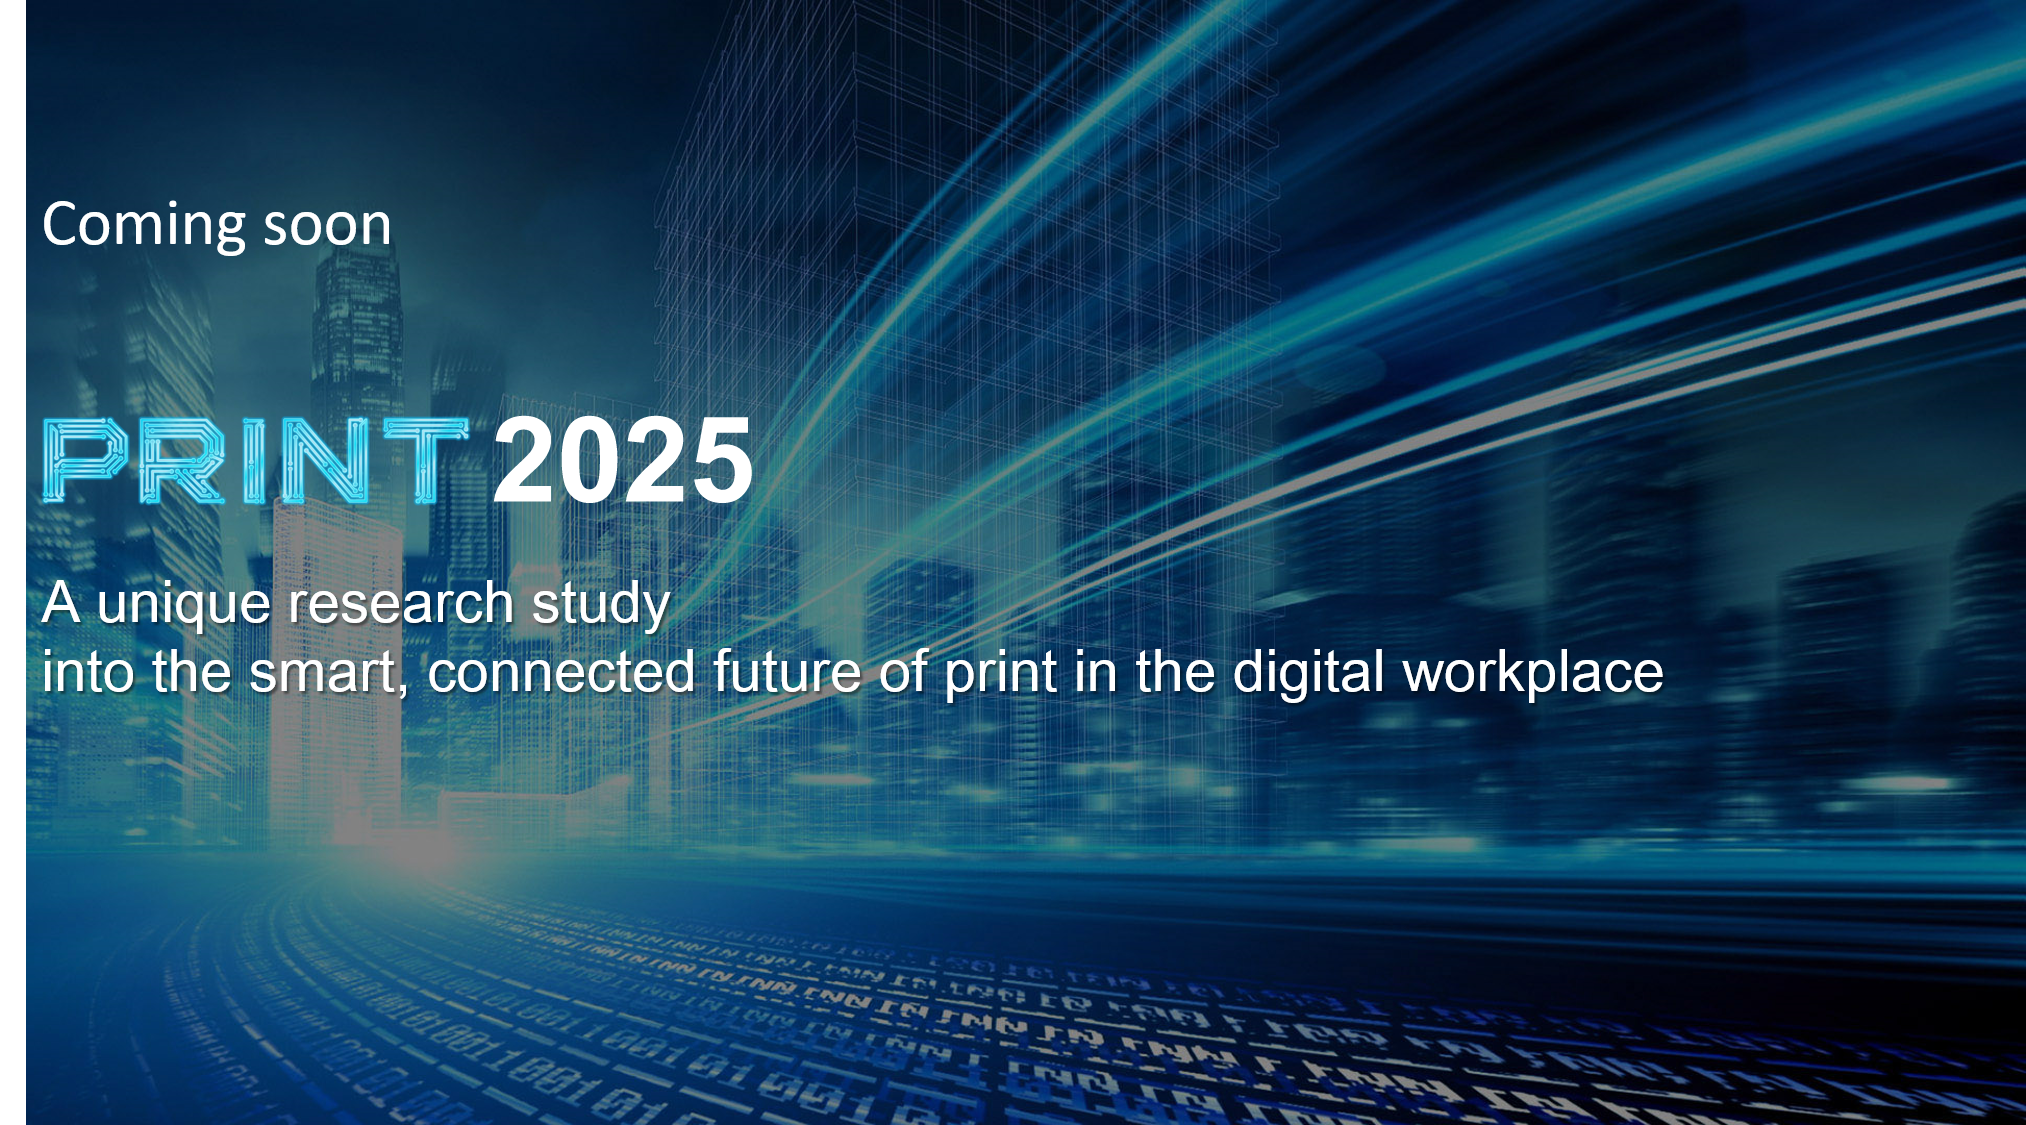 Print 2025: A vision for the future of the print industry